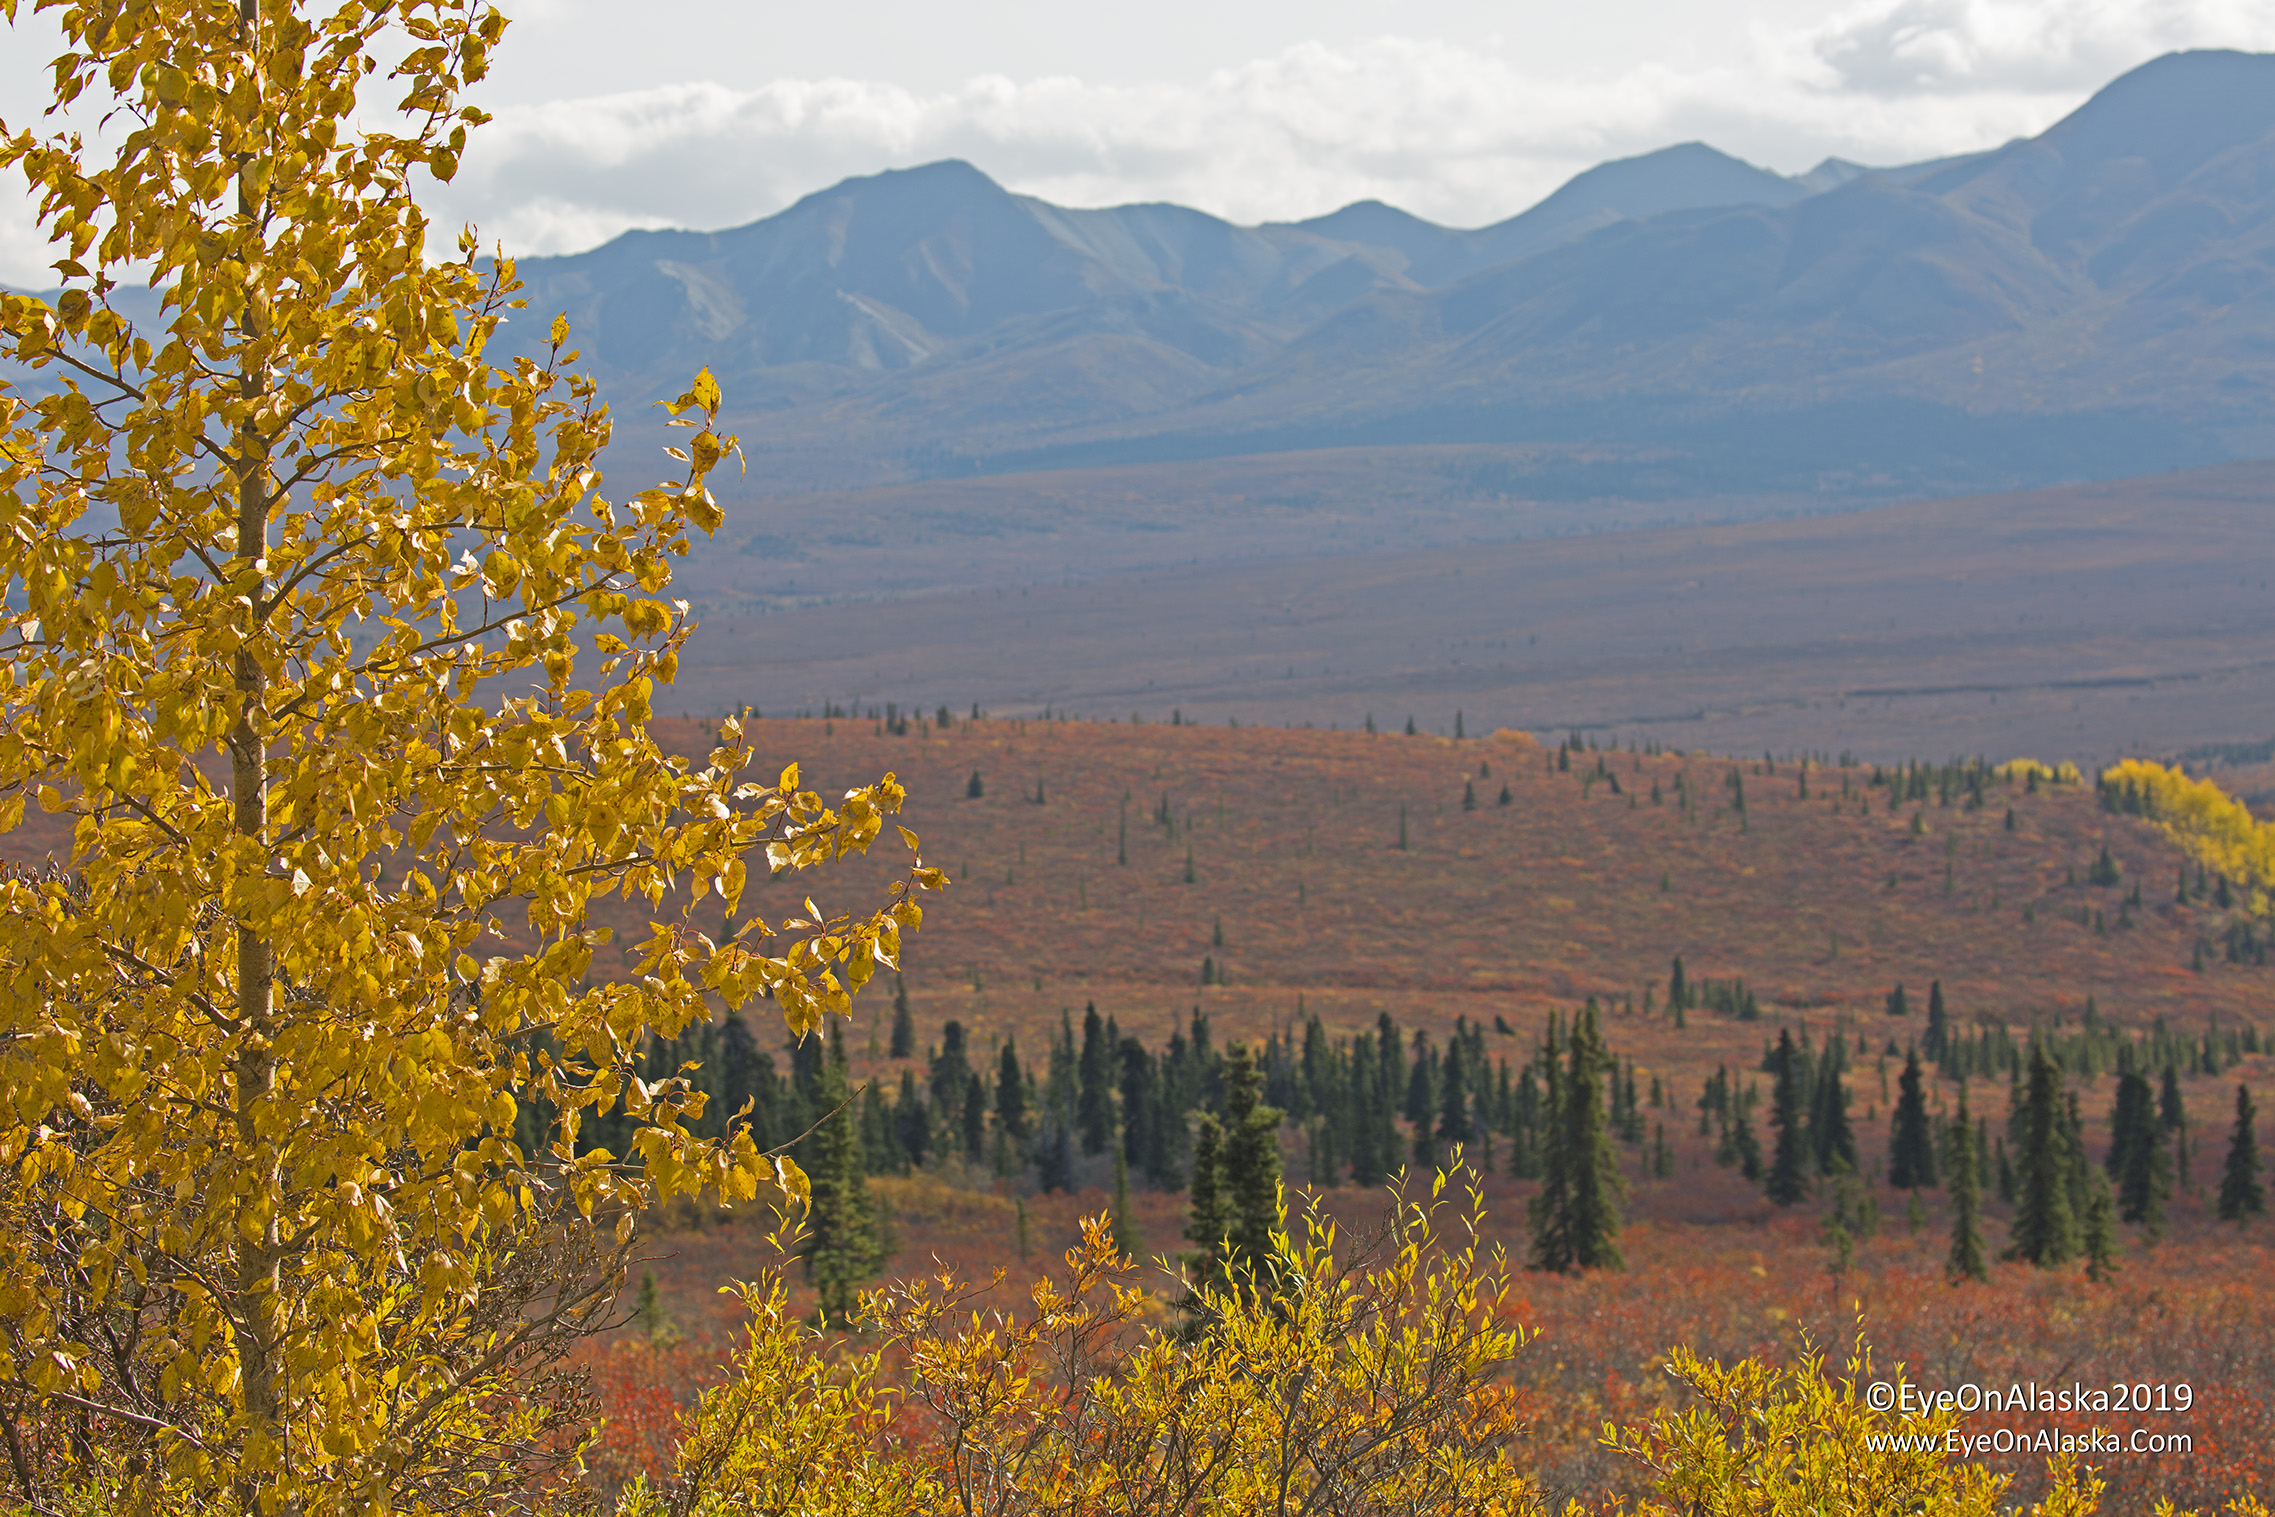 Just up from the Savage River bridge, the color is just exploding around us as we drive into the Teklanika campground on Thursday afternoon.